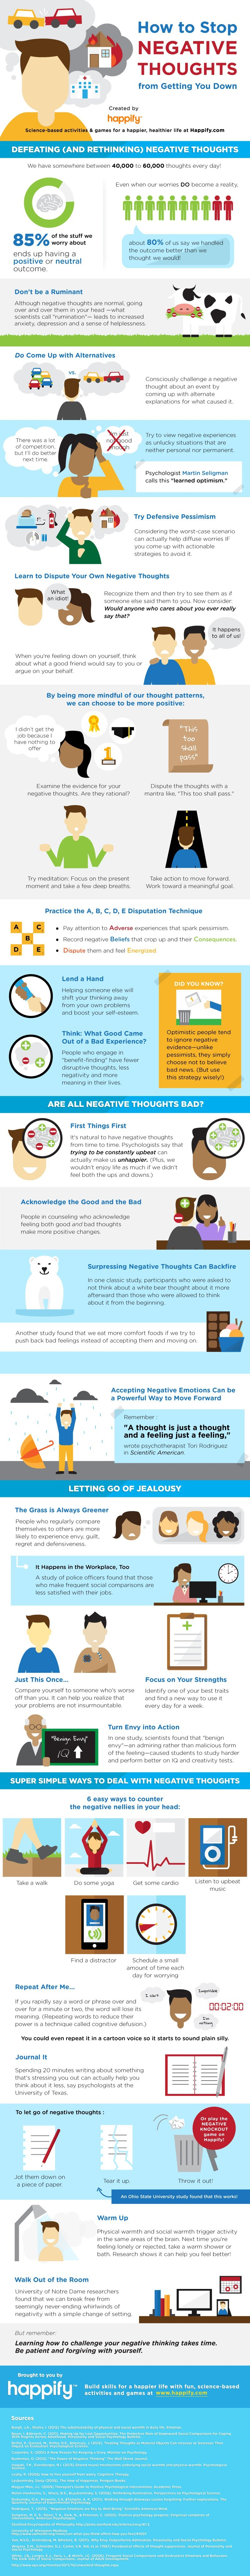 How To Stop Negative Thoughts From Getting You Down - #infographic